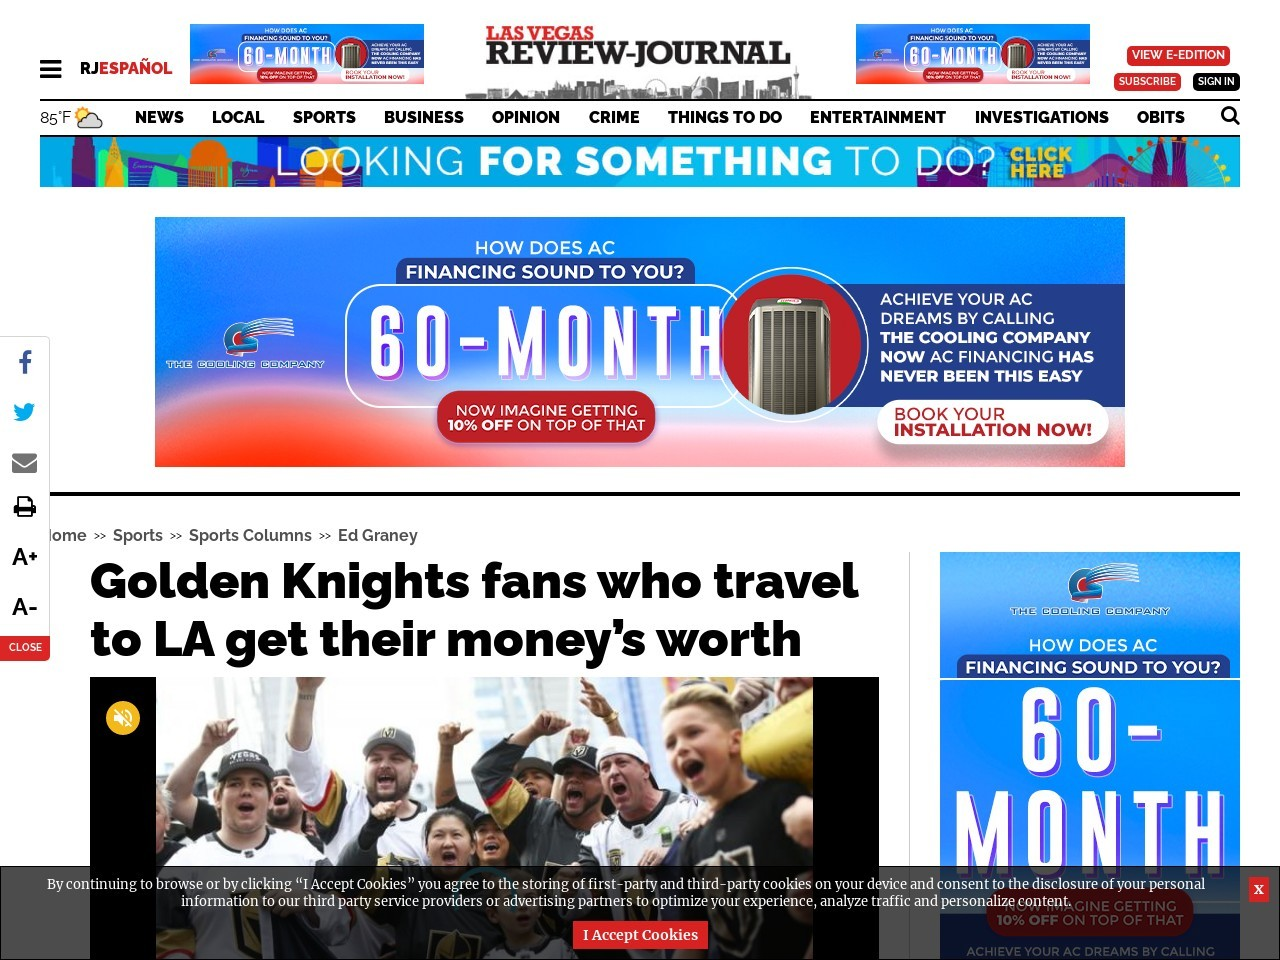 Golden Knights fans who travel to LA get their money's worth